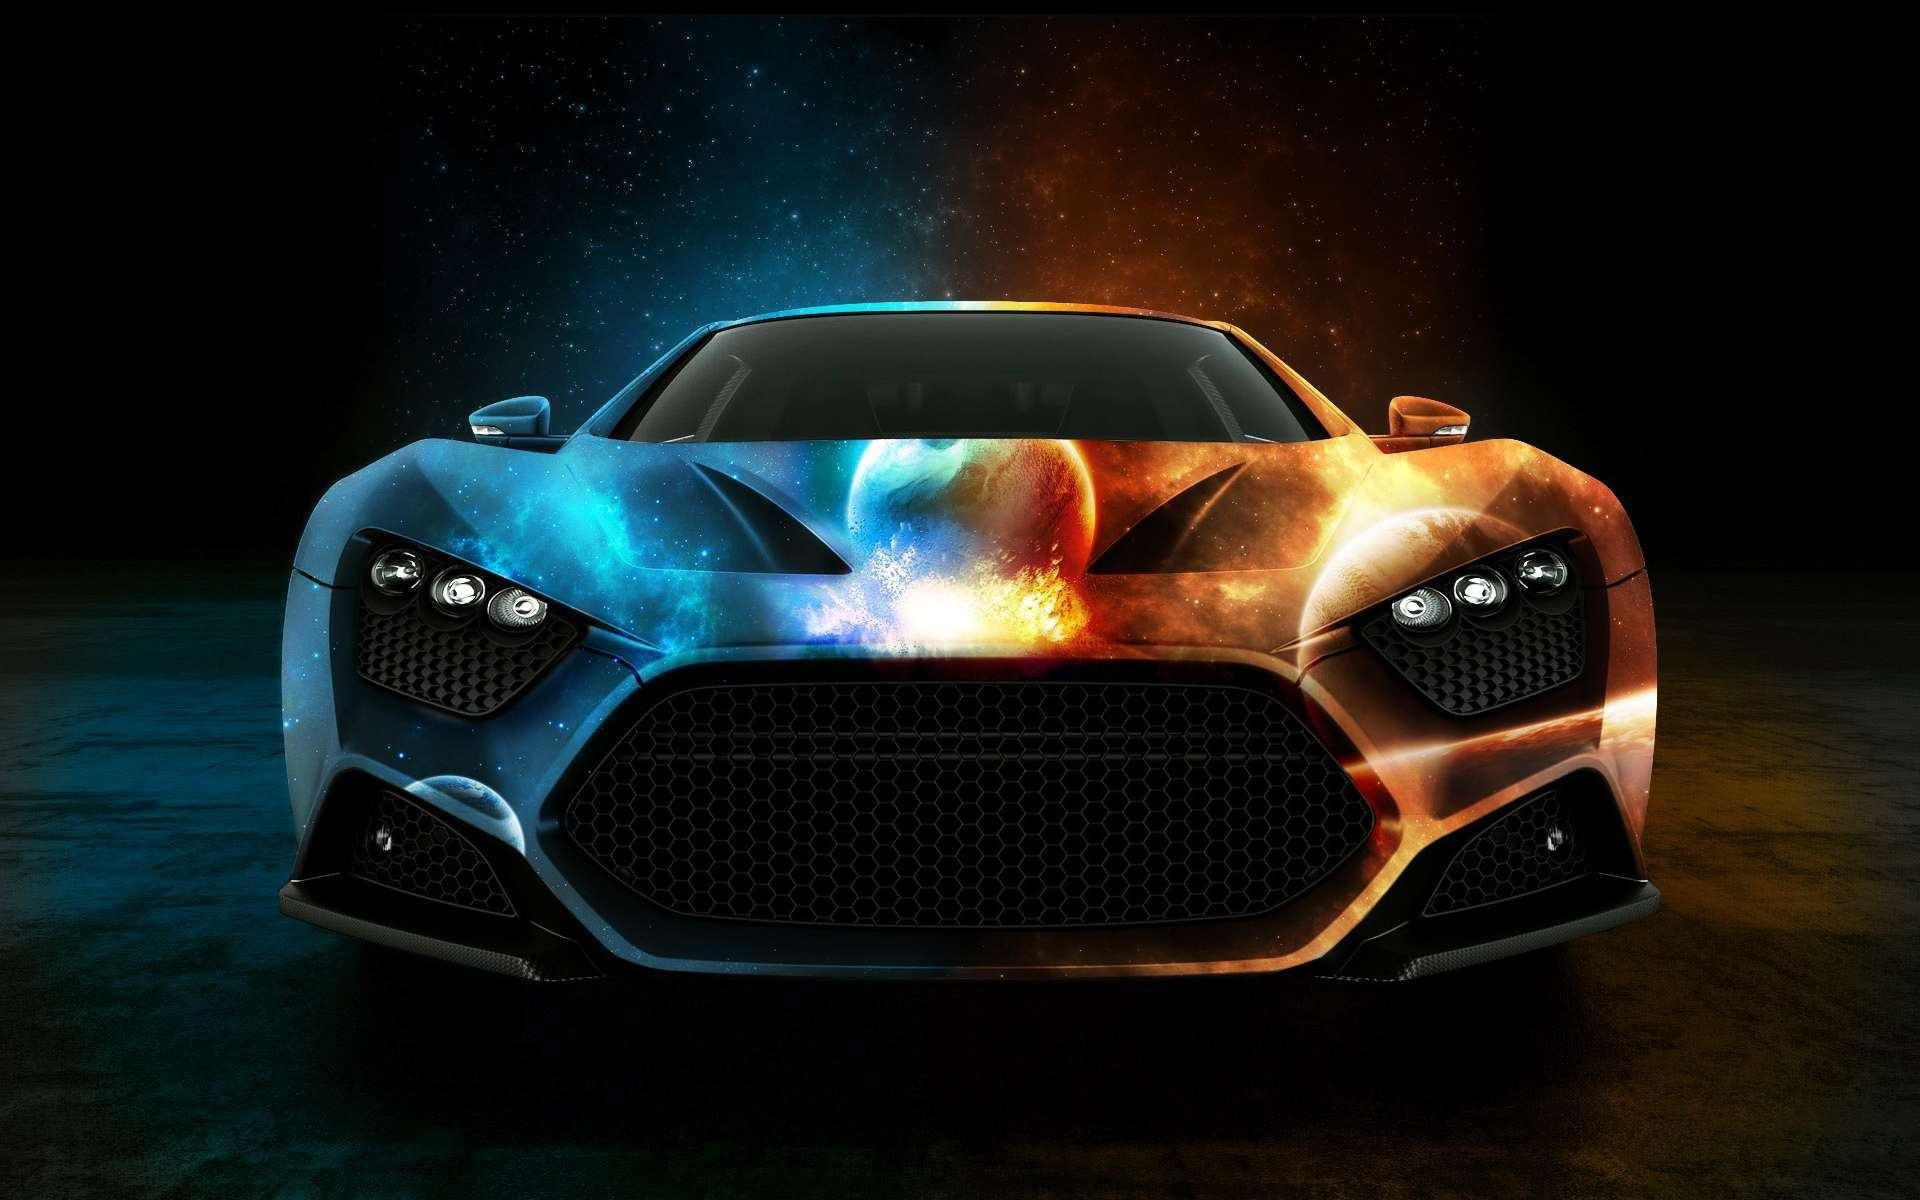 1920x1200 Latest Coolest Car Wallpaper Ever In Pics H6p And Coolest Car  Wallpaper New On Wallpapers